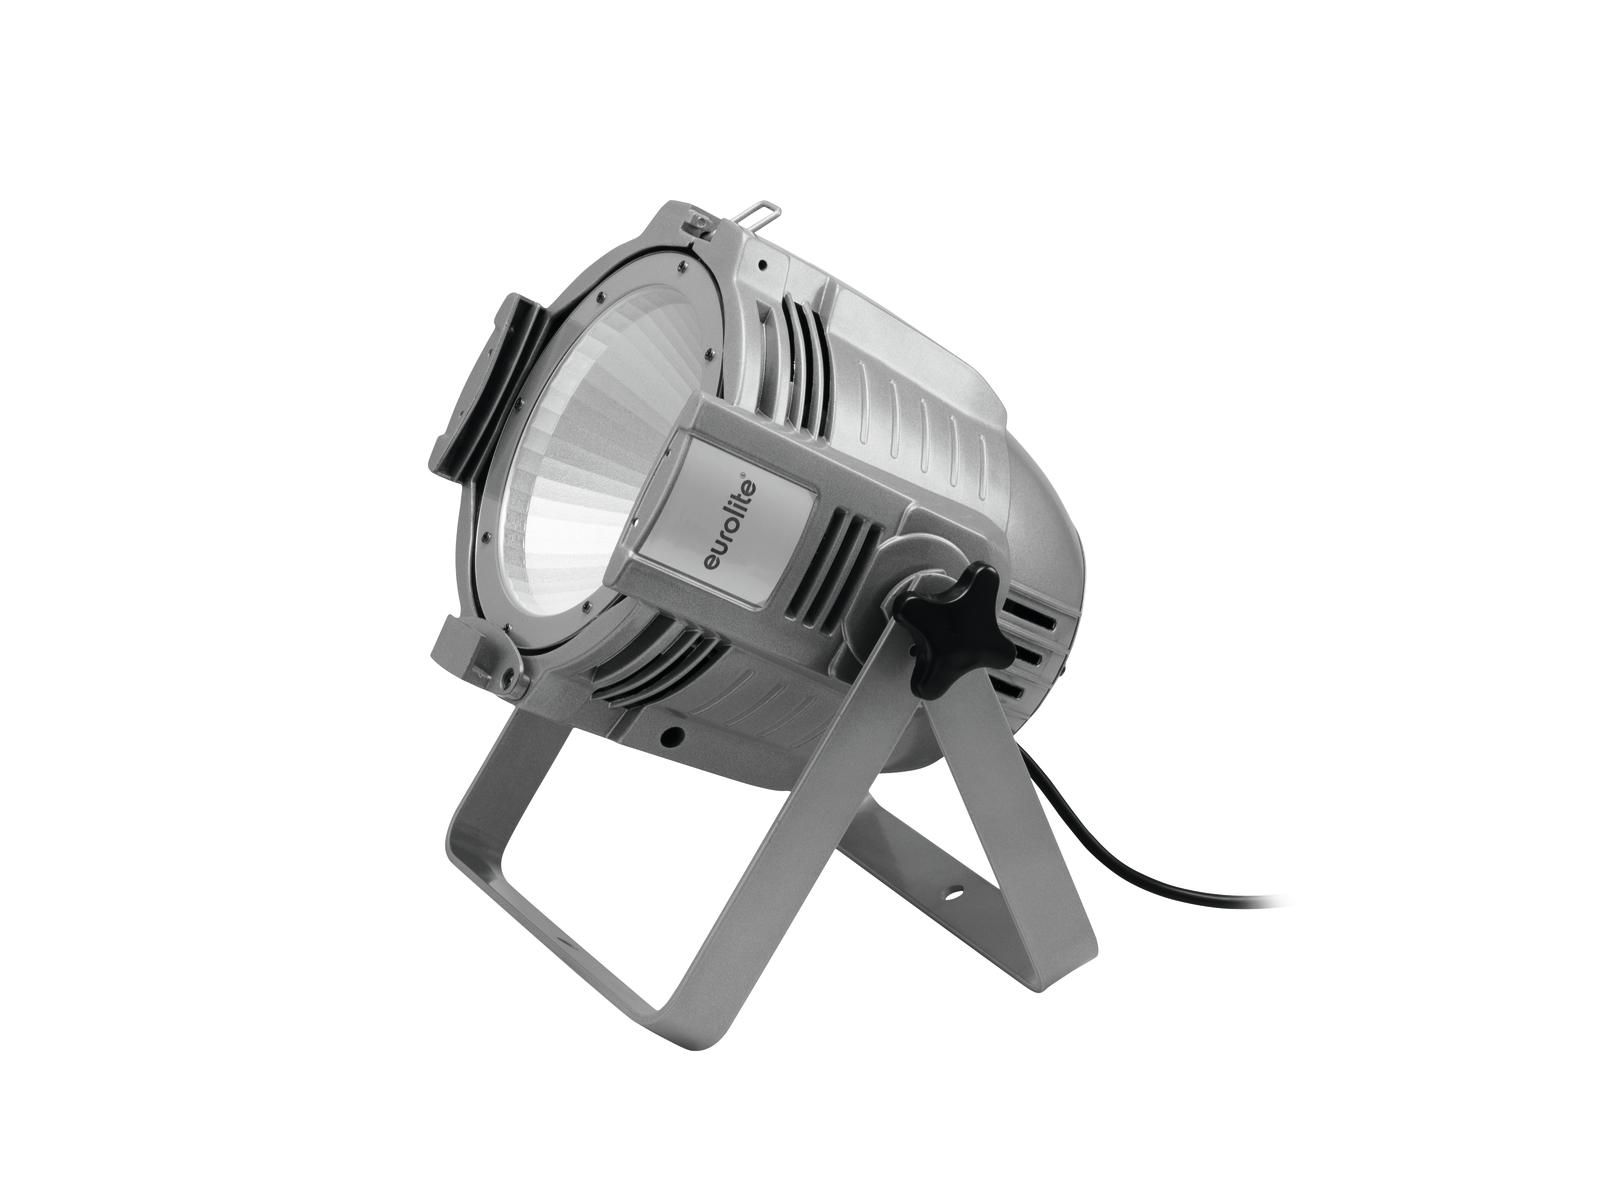 eurolite-led-ml-56-cob-5600k-100w-floor-sil